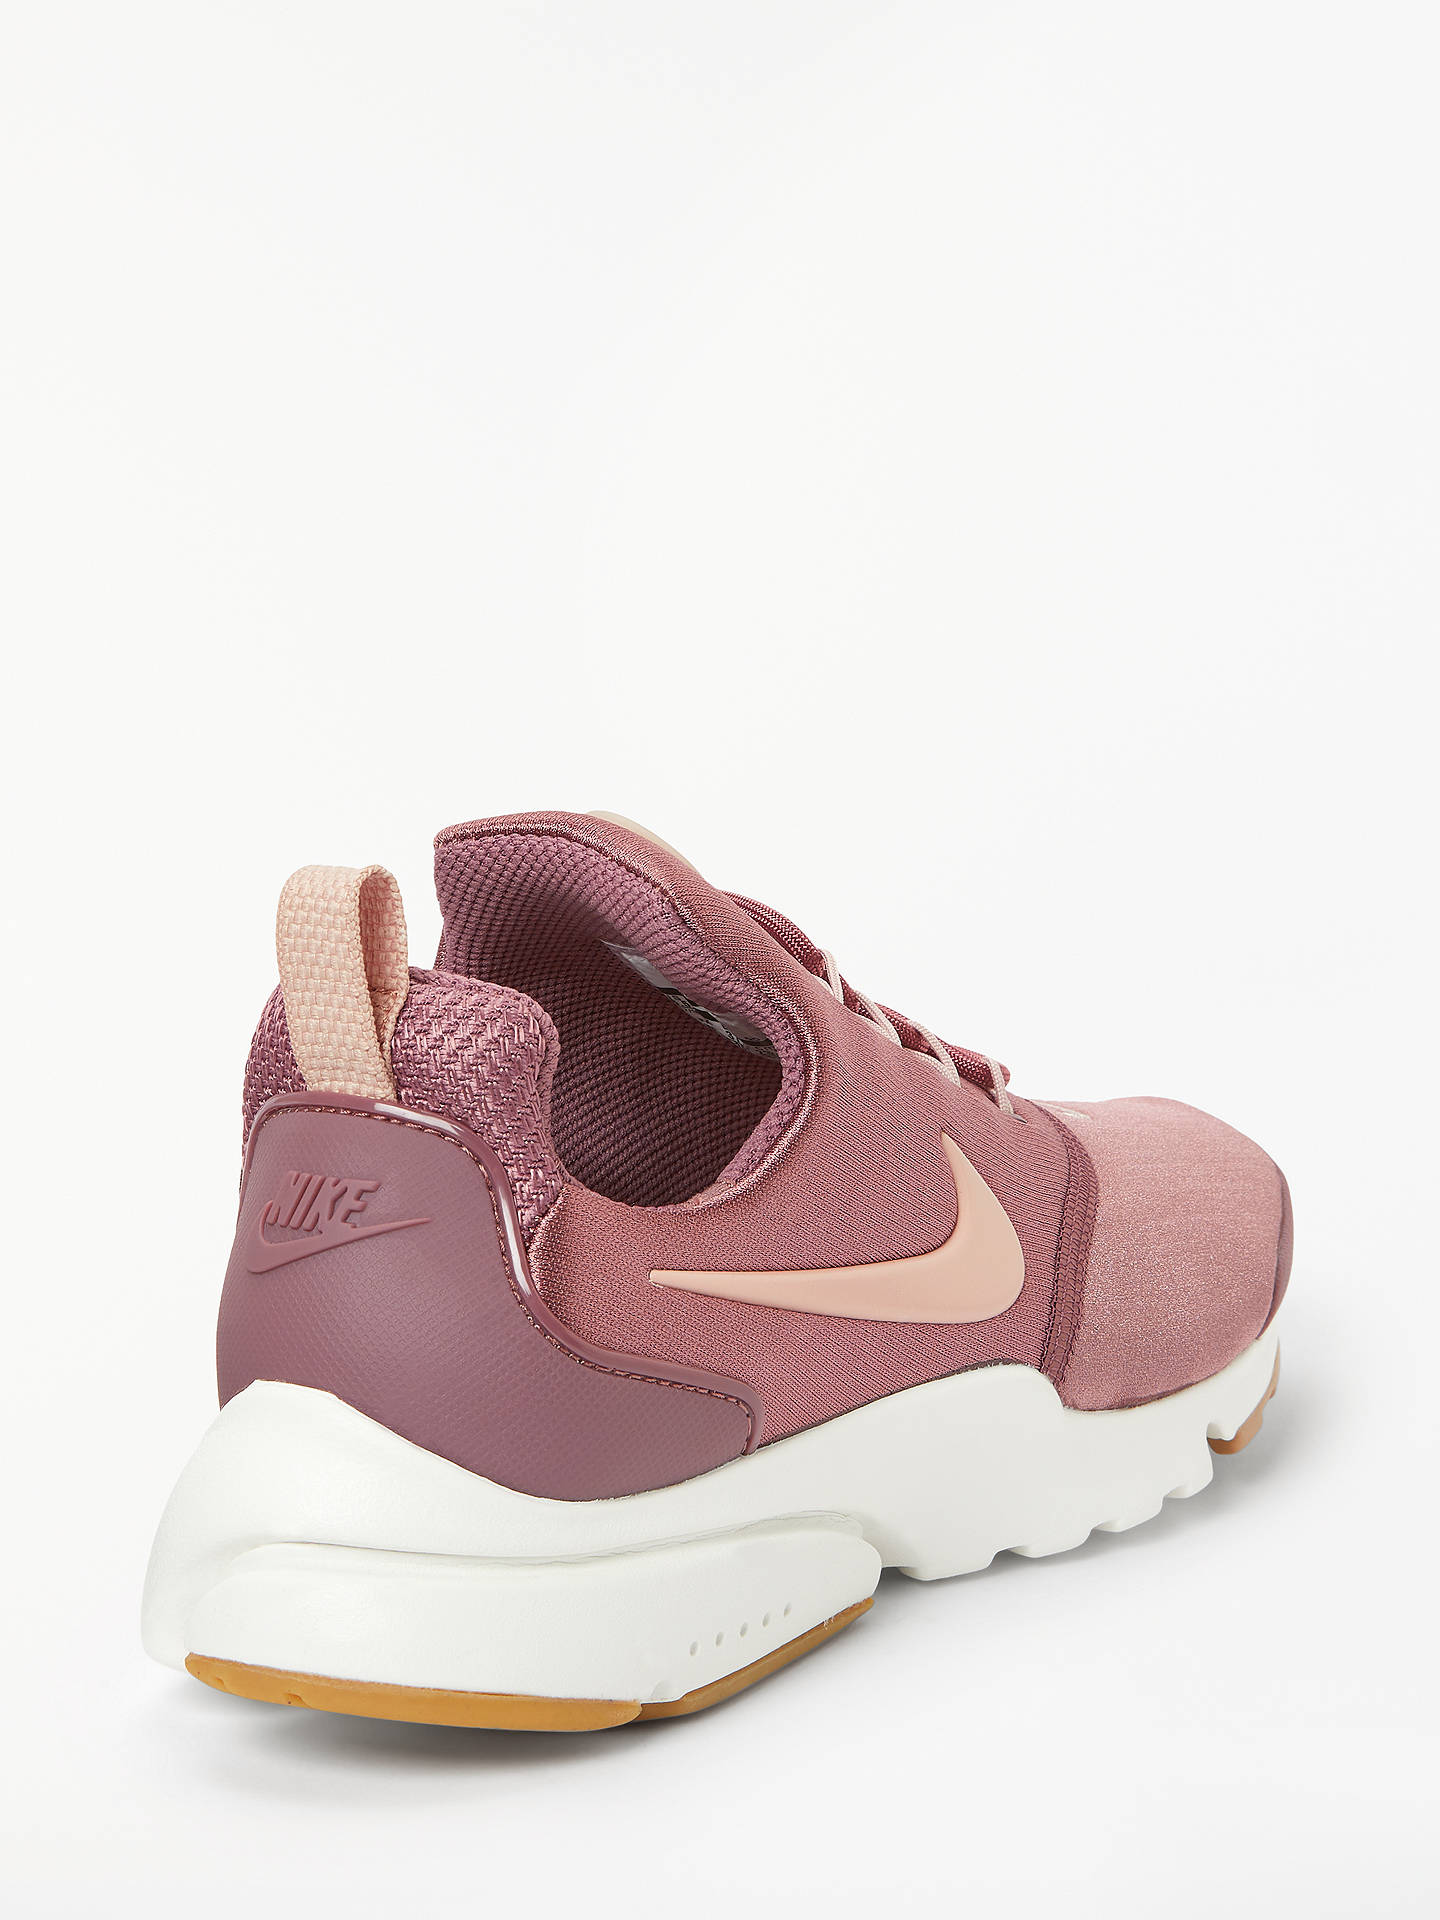 quality design cd420 f10c3 Nike Presto Fly Women's Trainers, Smokey Mauve/Particle Beige